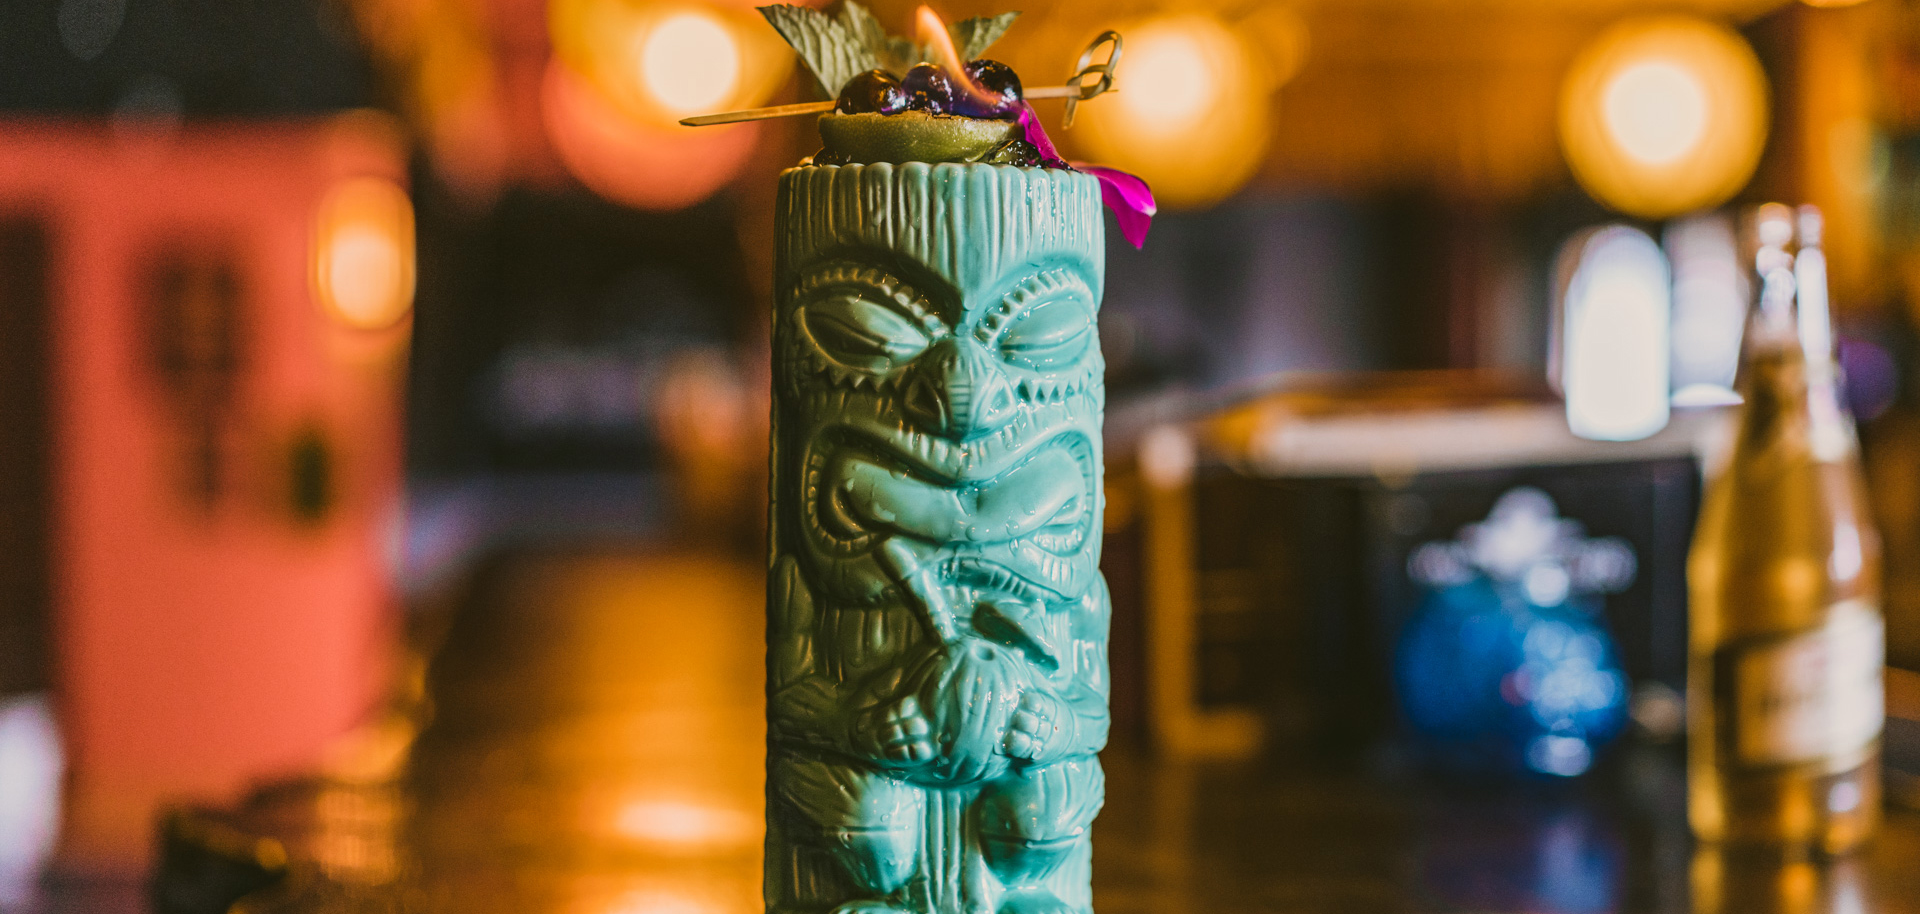 A cocktail in a tiki glass at Tulsa Arts District bar Saturn Room.